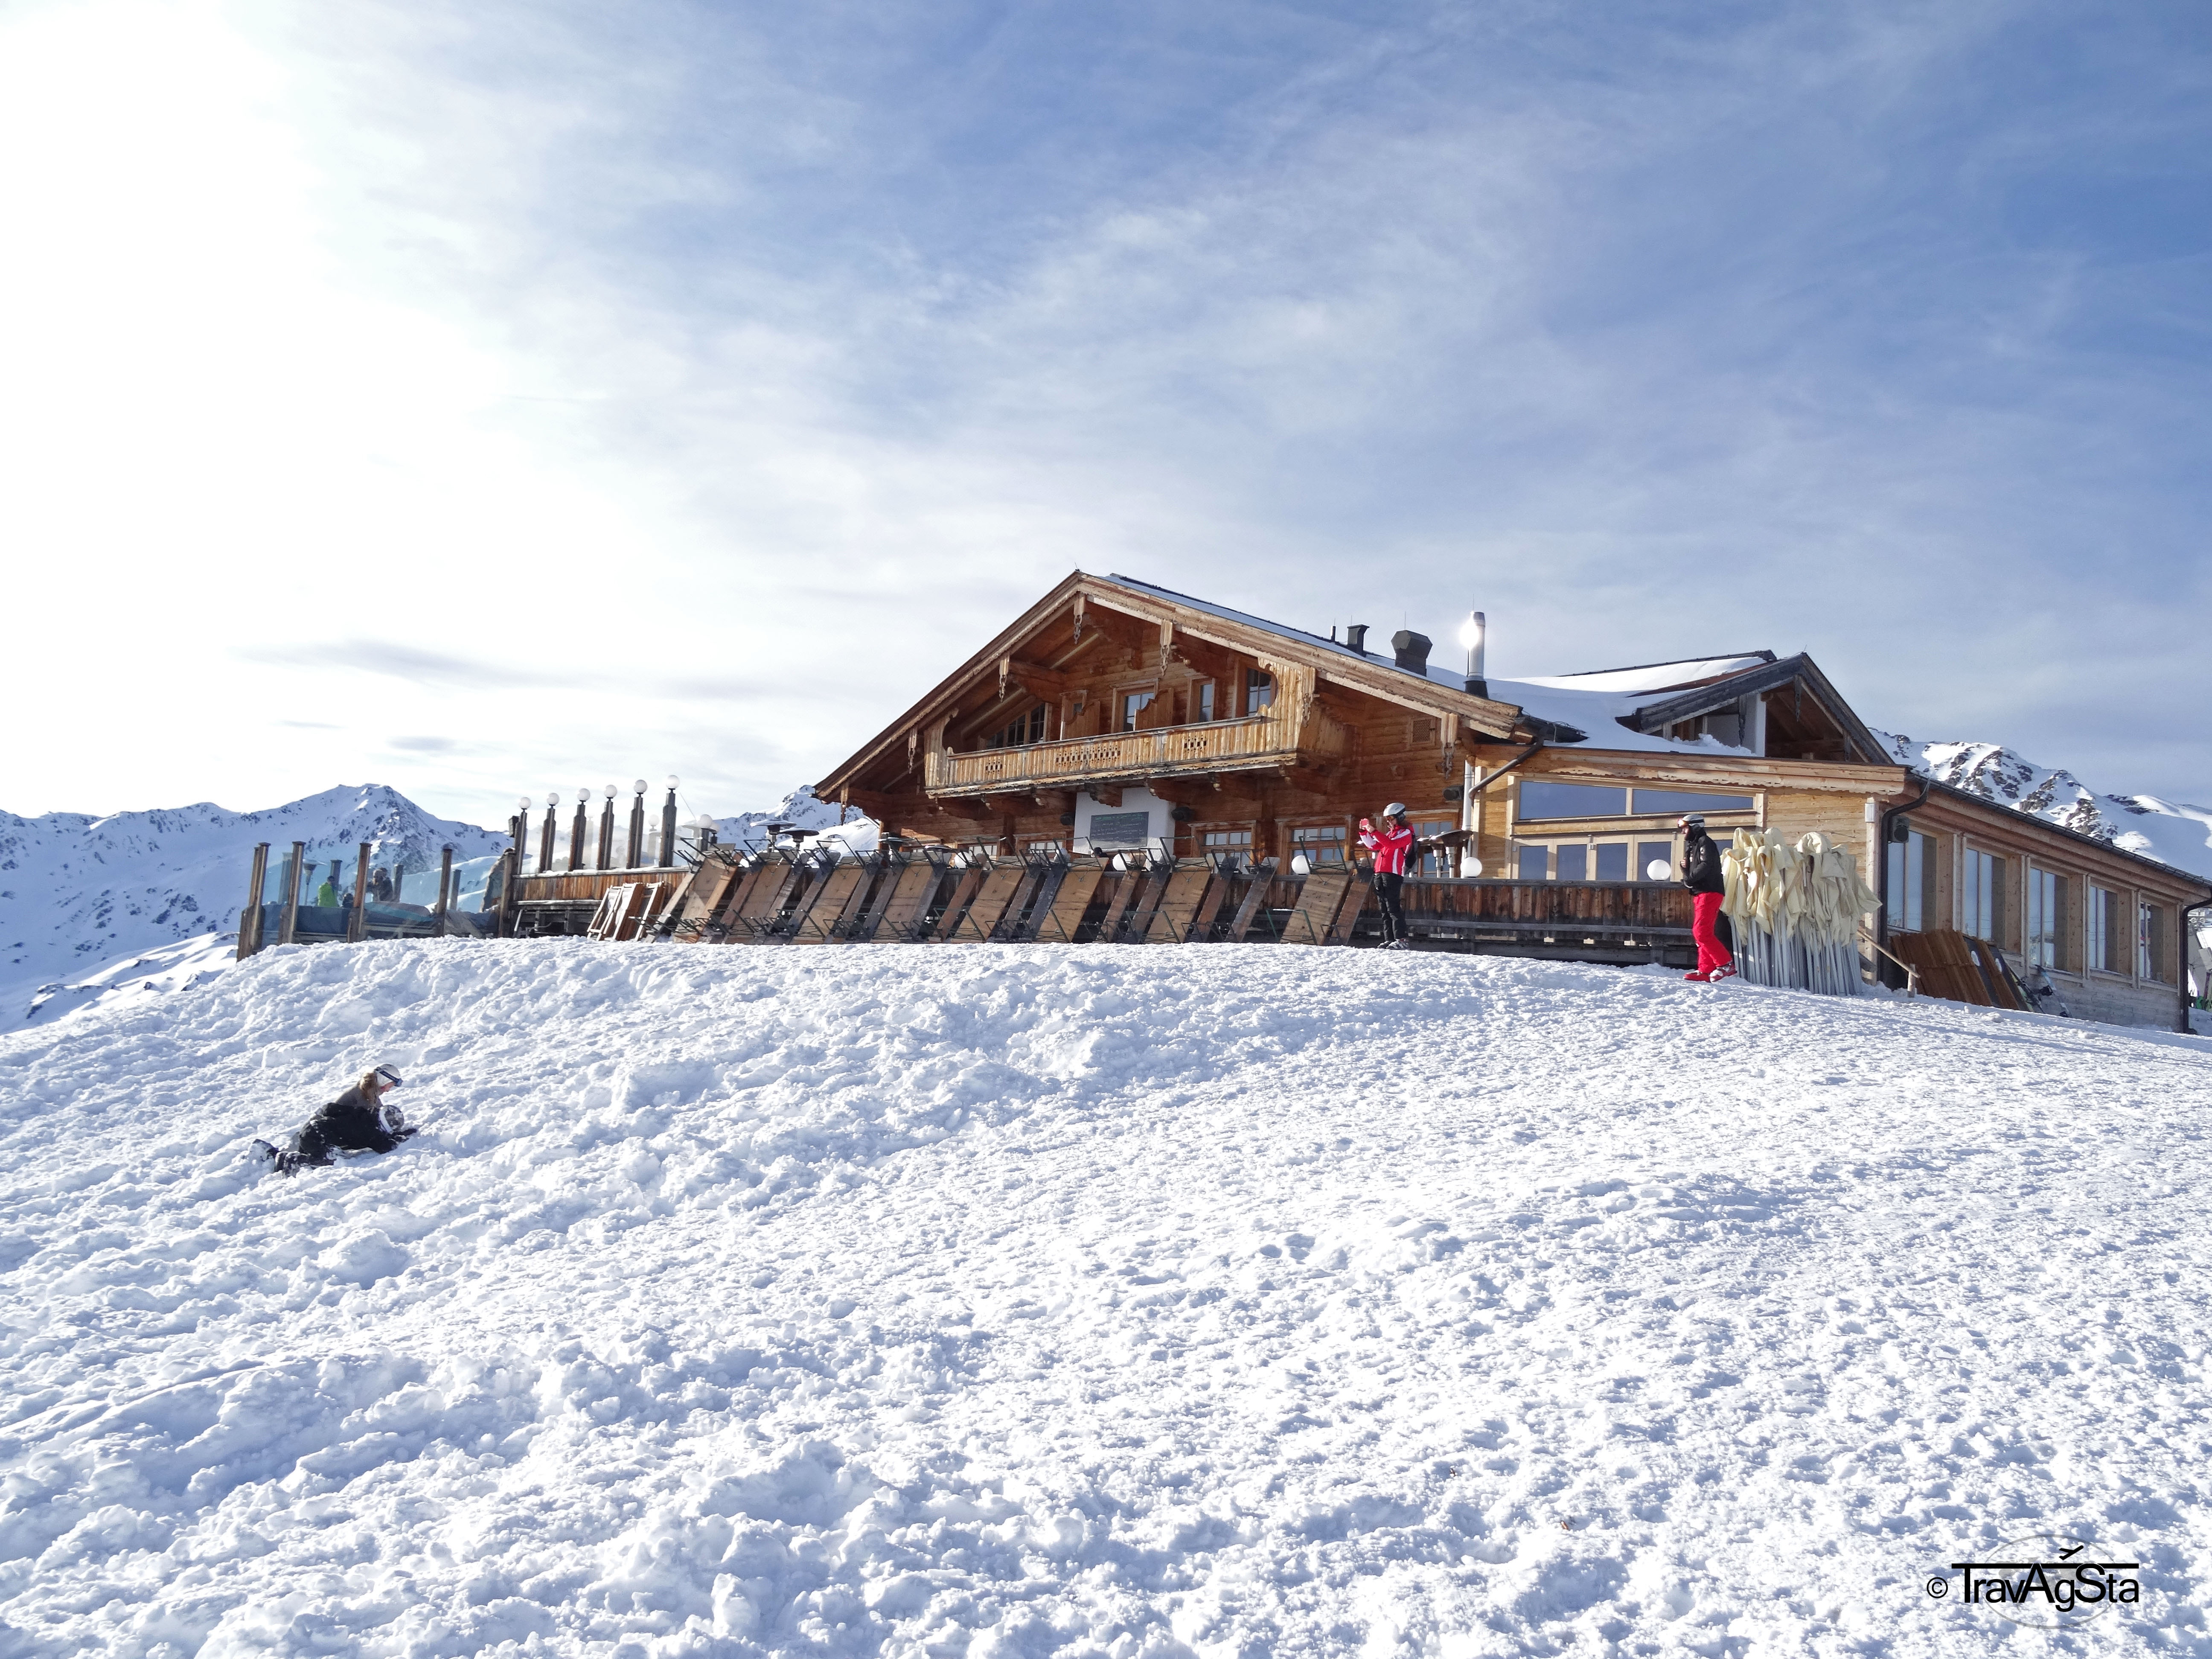 Skiing weekend in Zillertal – bring your GoPro!